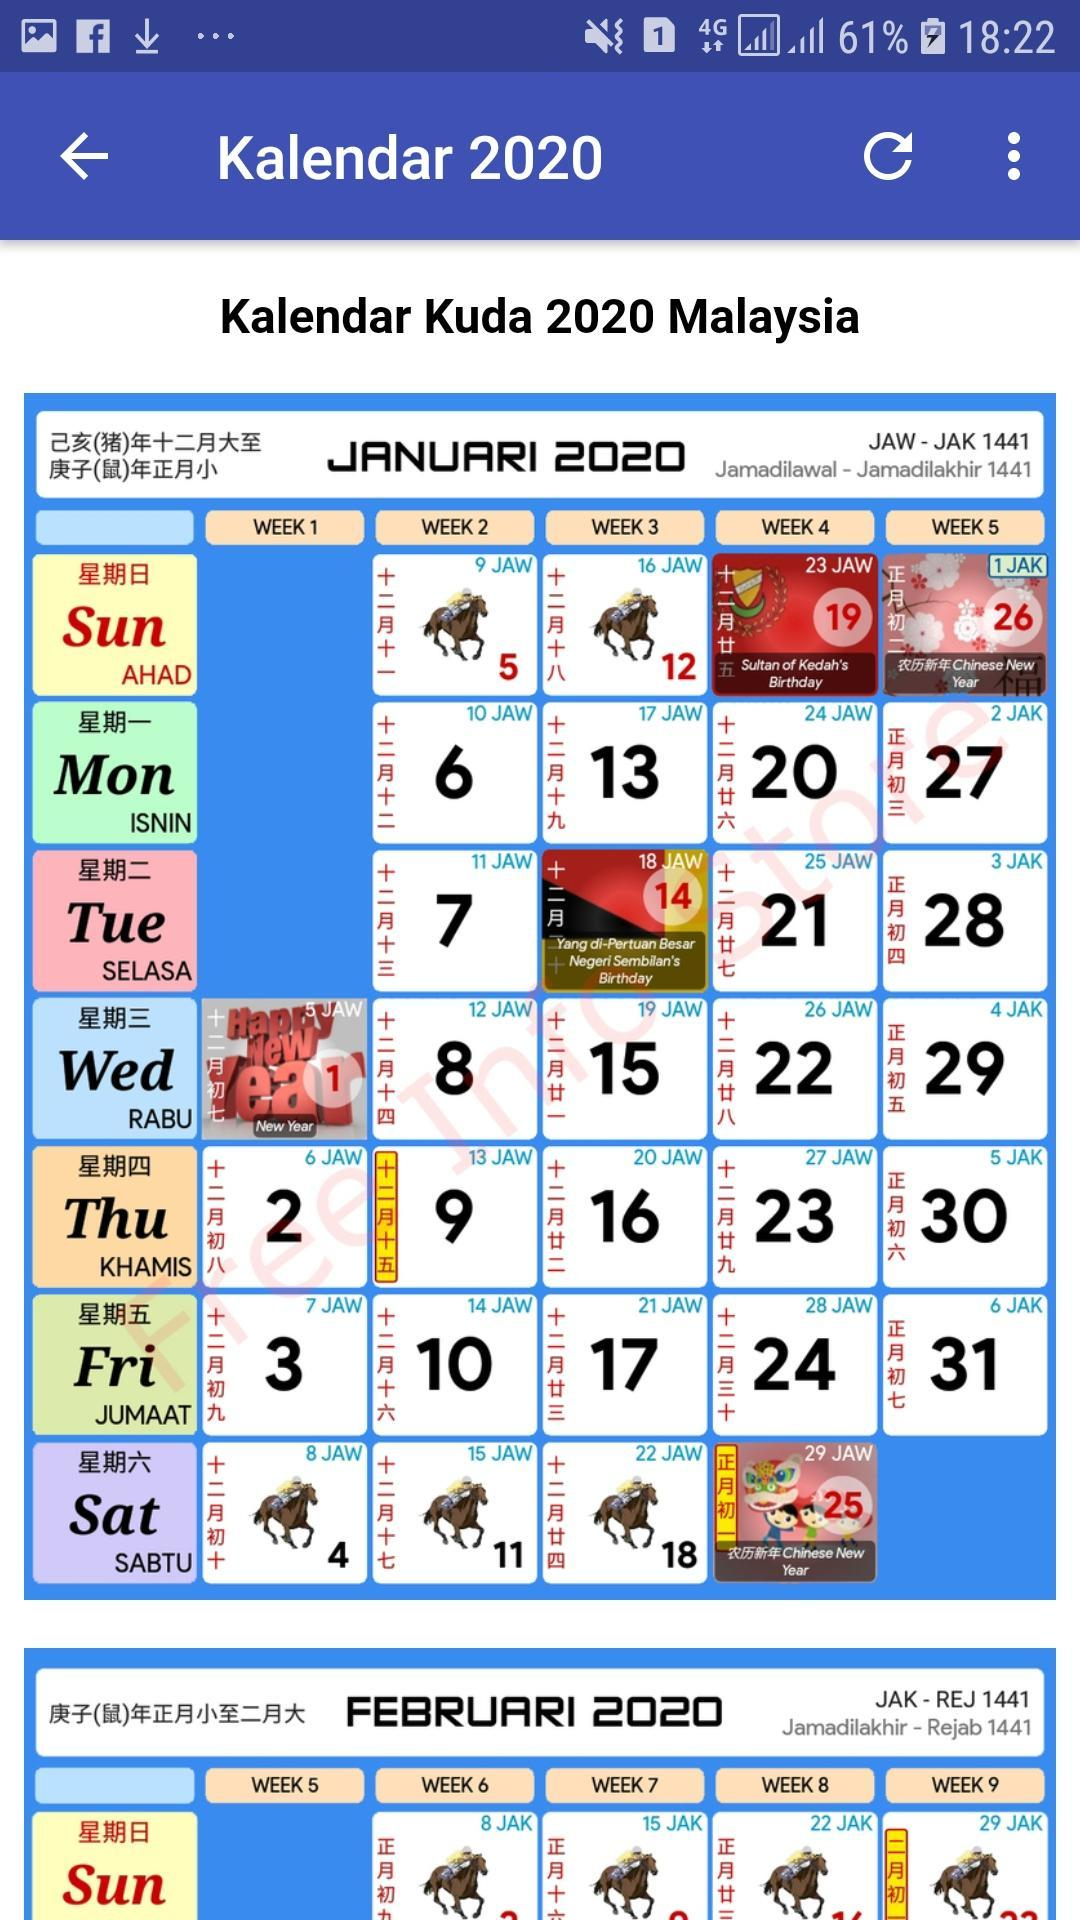 Kalendar Kuda 2020 For Android  Apk Download regarding Kuda Calendar 2020